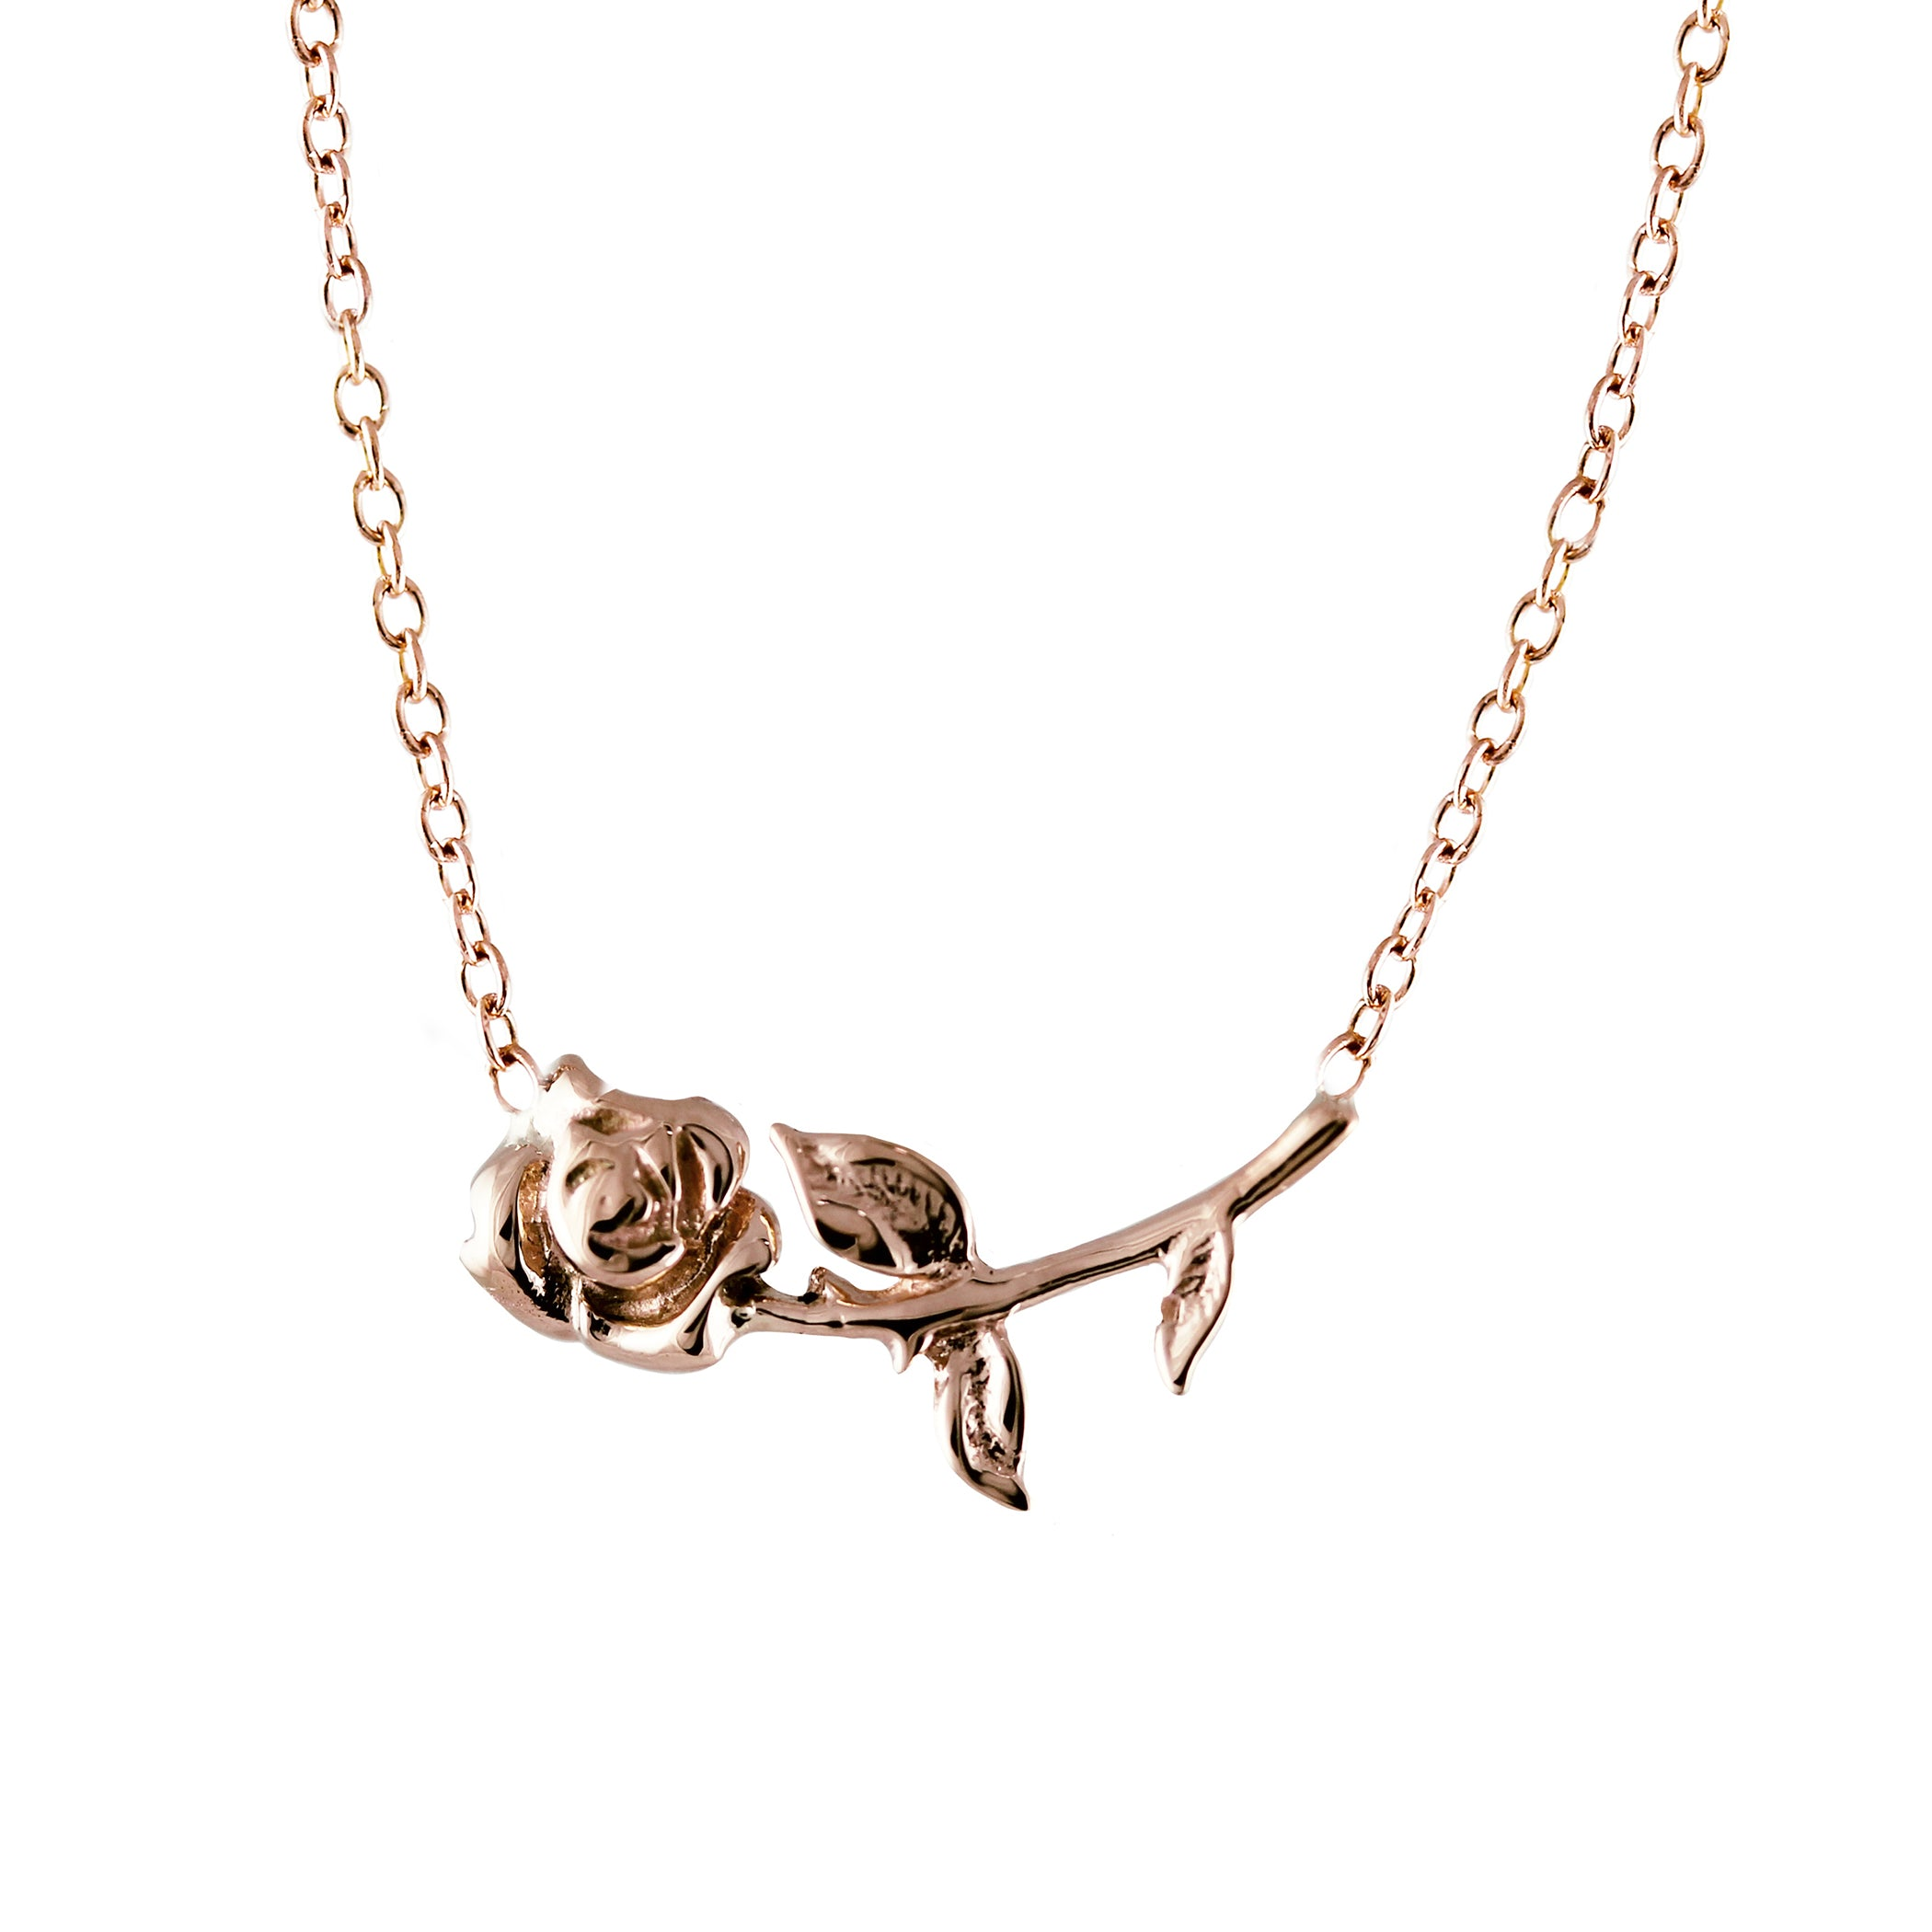 14K JULIET'S ROSE NECKLACE